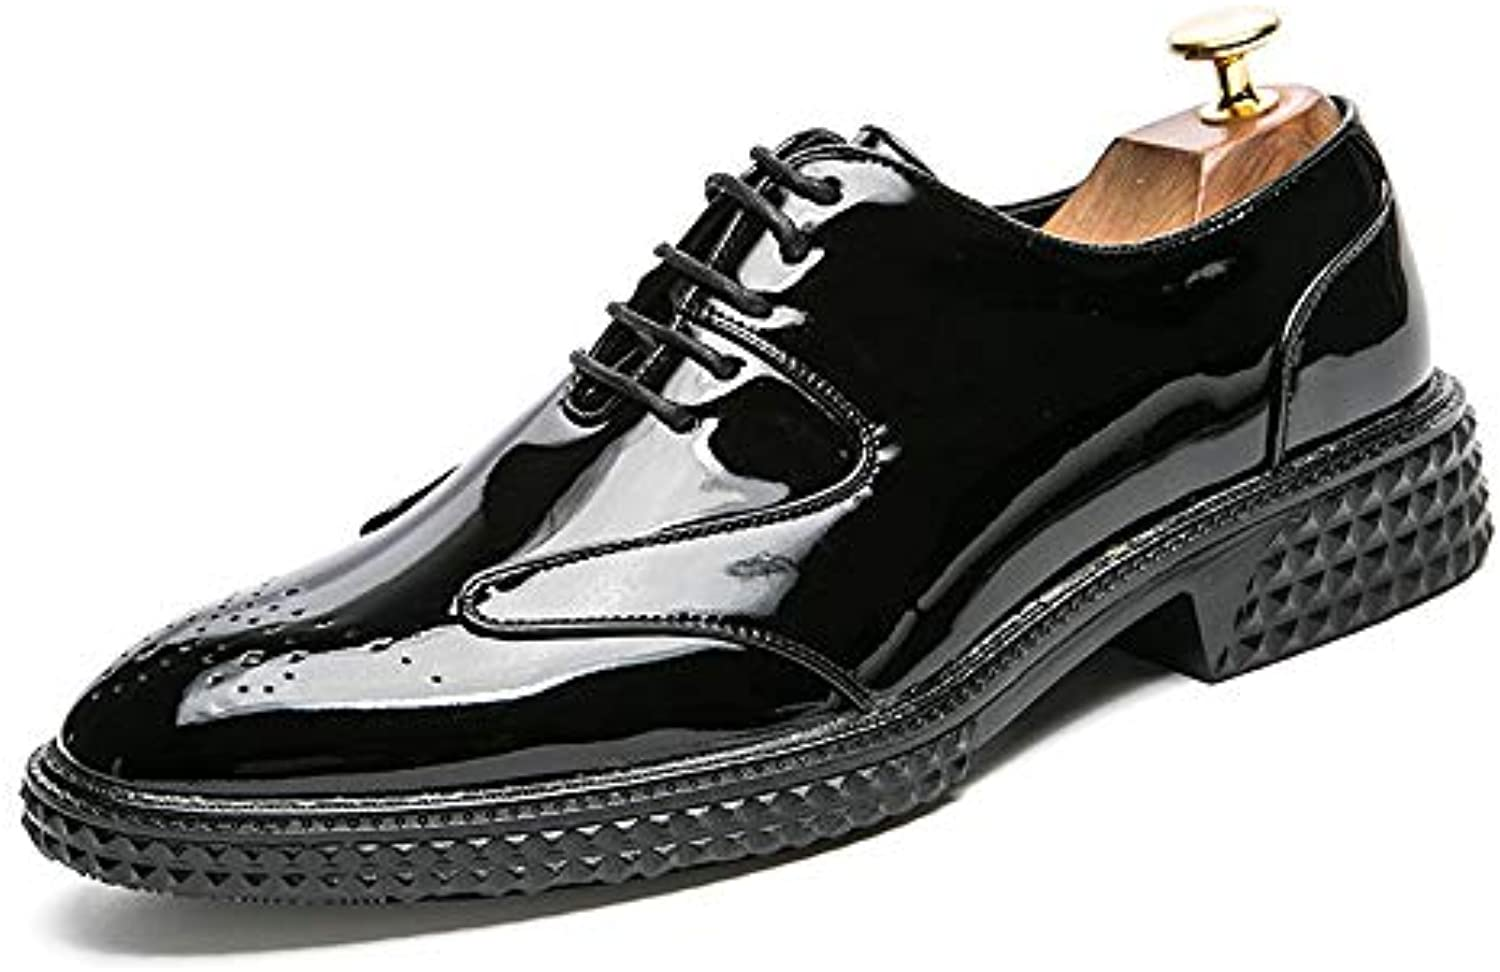 Da Uomo Business Oxford Casual Personality Fashion Fashion Fashion Retro Brush Coloreee Scarpe in Brogue Traspirante in Vernice... | Lavorazione perfetta